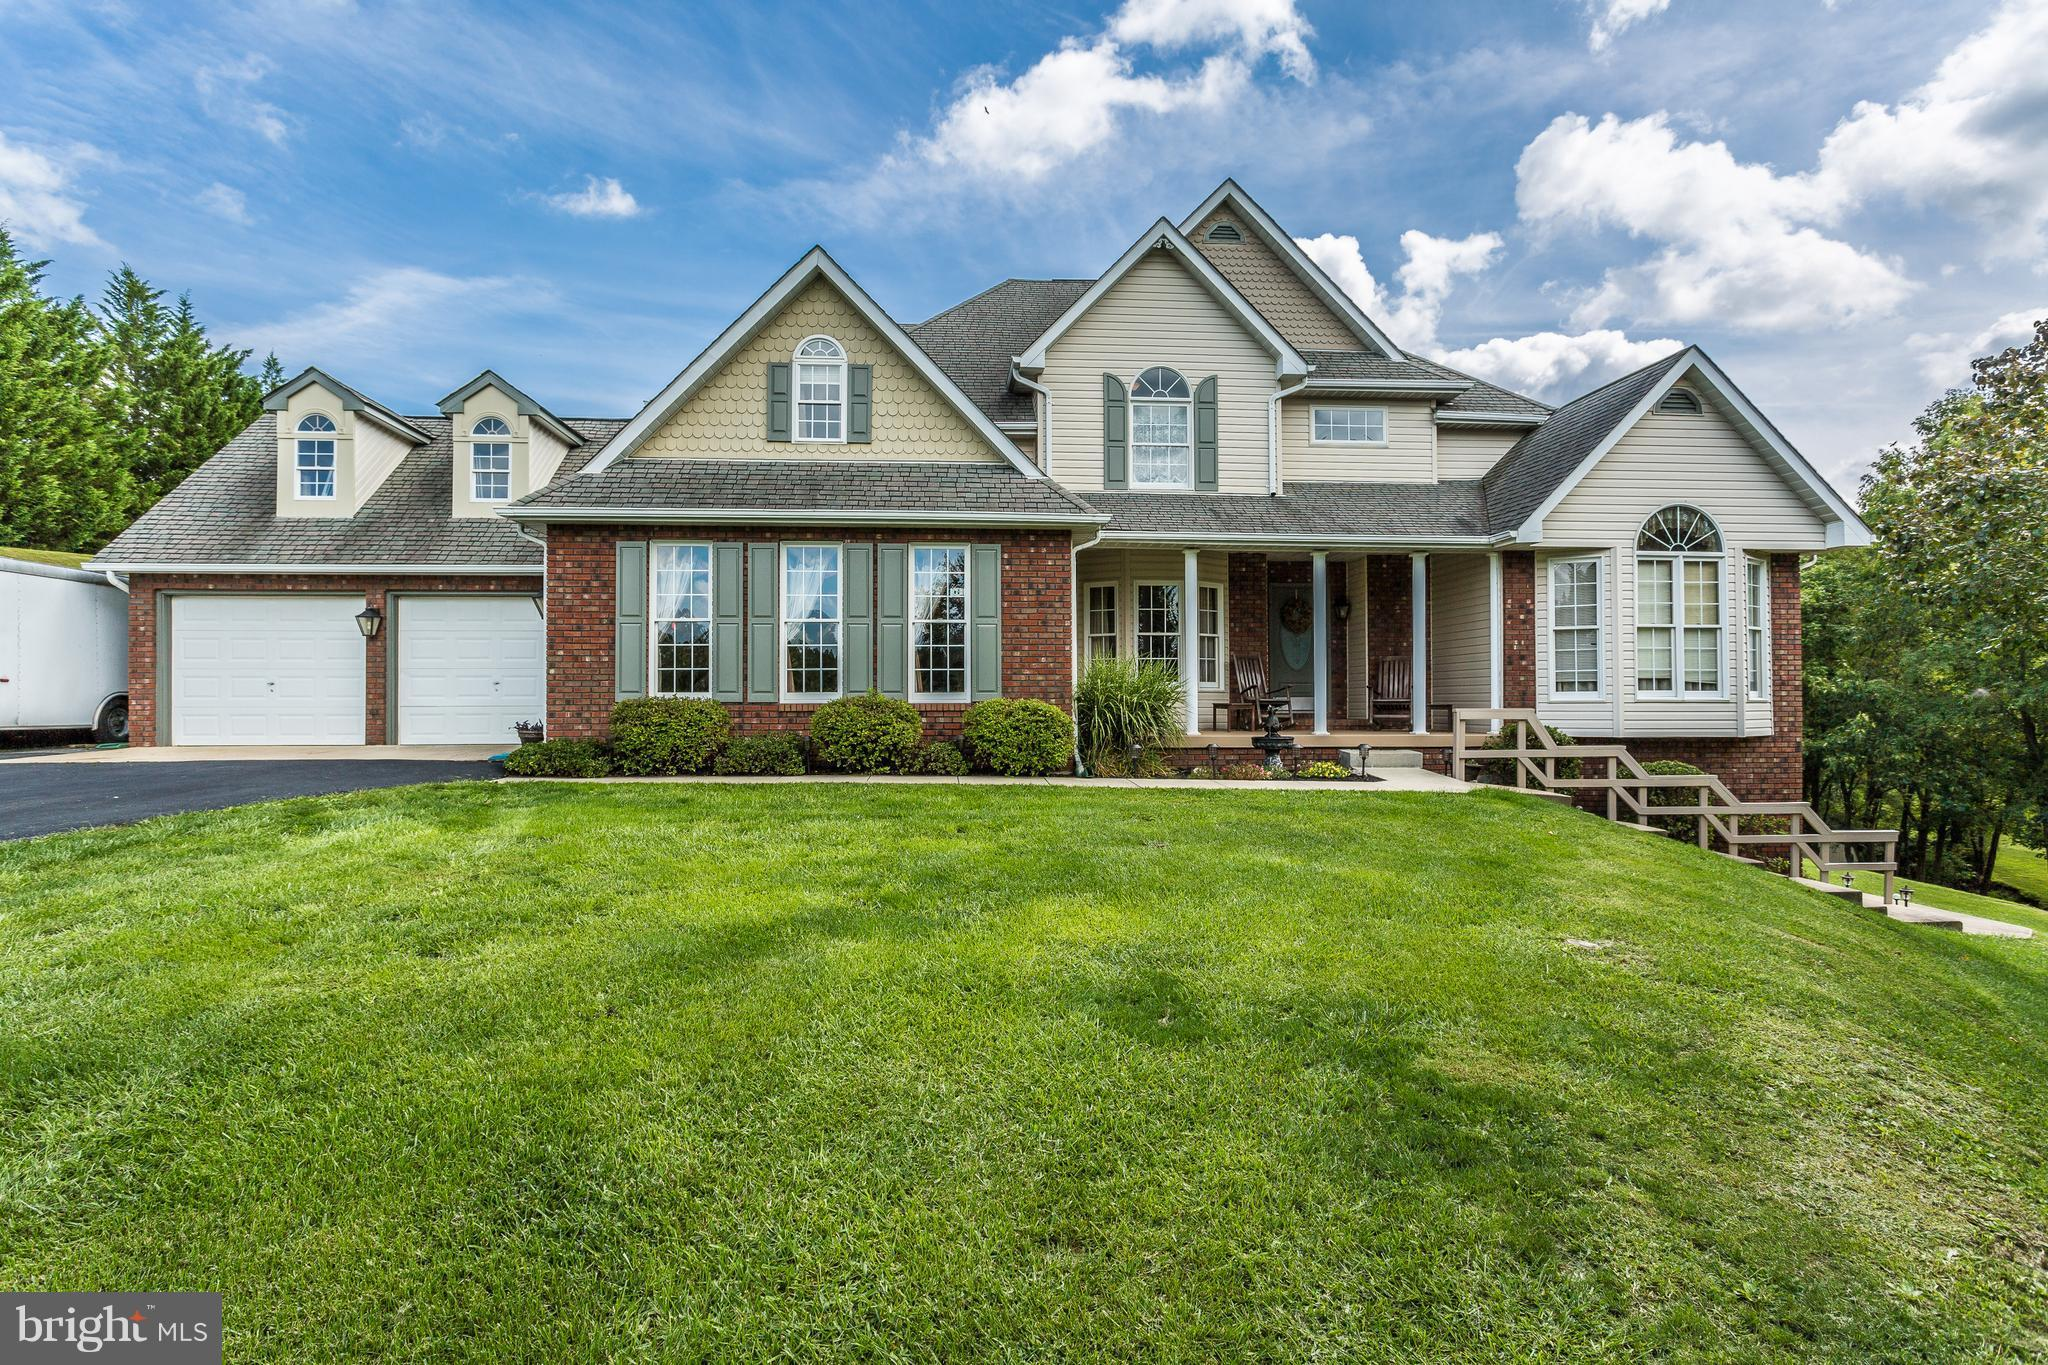 13403 AUTUMN CREST DRIVE, MOUNT AIRY, MD 21771